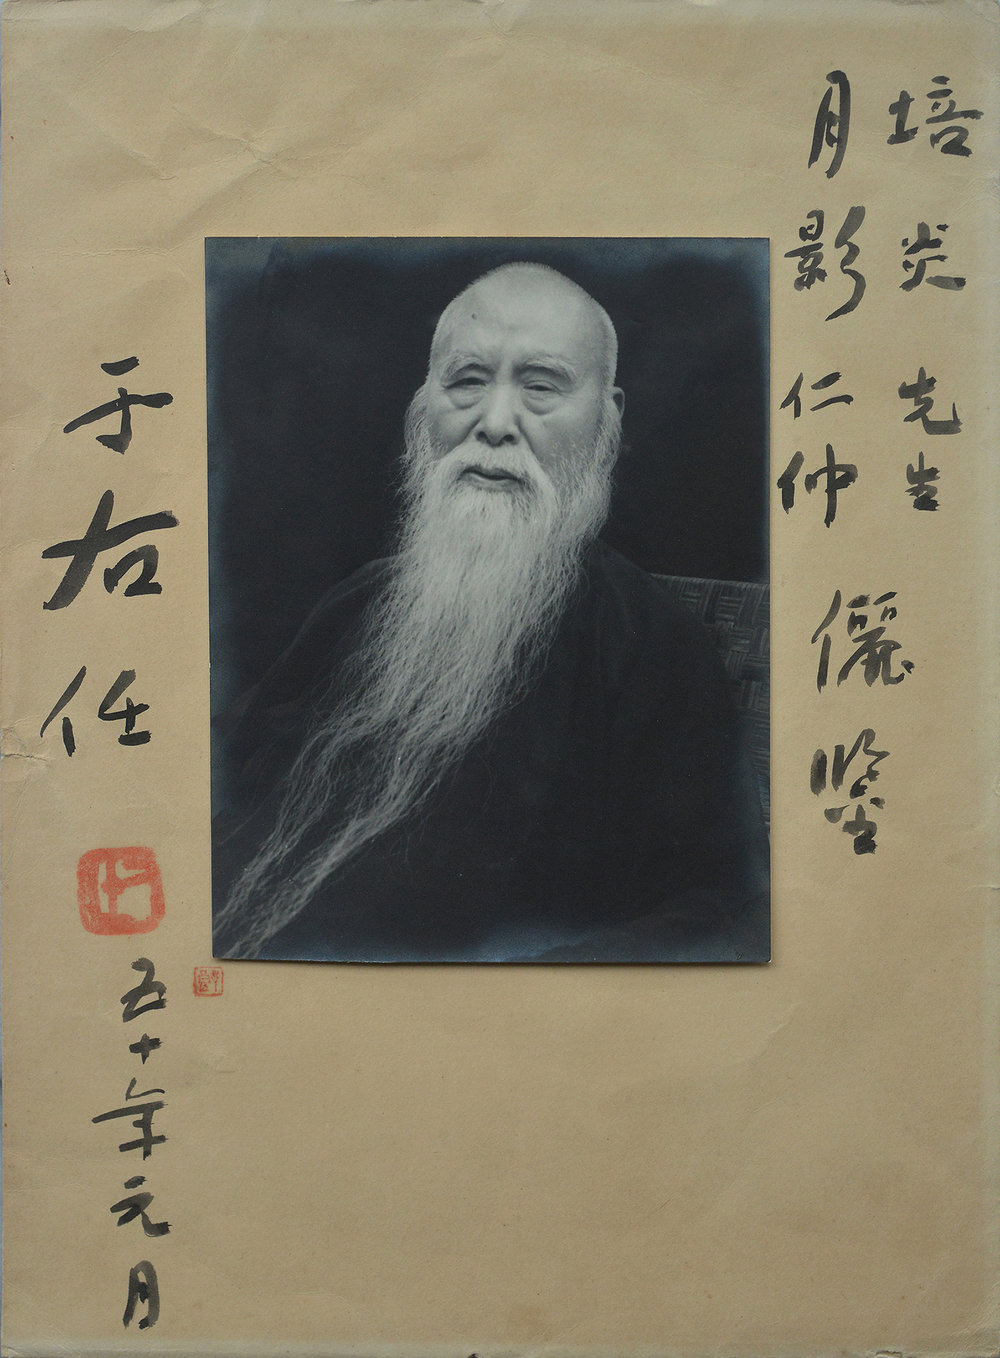 Lang Jingshan, Yu Youren's Portrait, Taipei, late 1950s, Printed in Taiwan on fine heavy paper by Lang Jingshan, early 1960s, 28.4x20.8 cm, courtesy of Huang Jianpeng Gallery 黄建鹏画廊